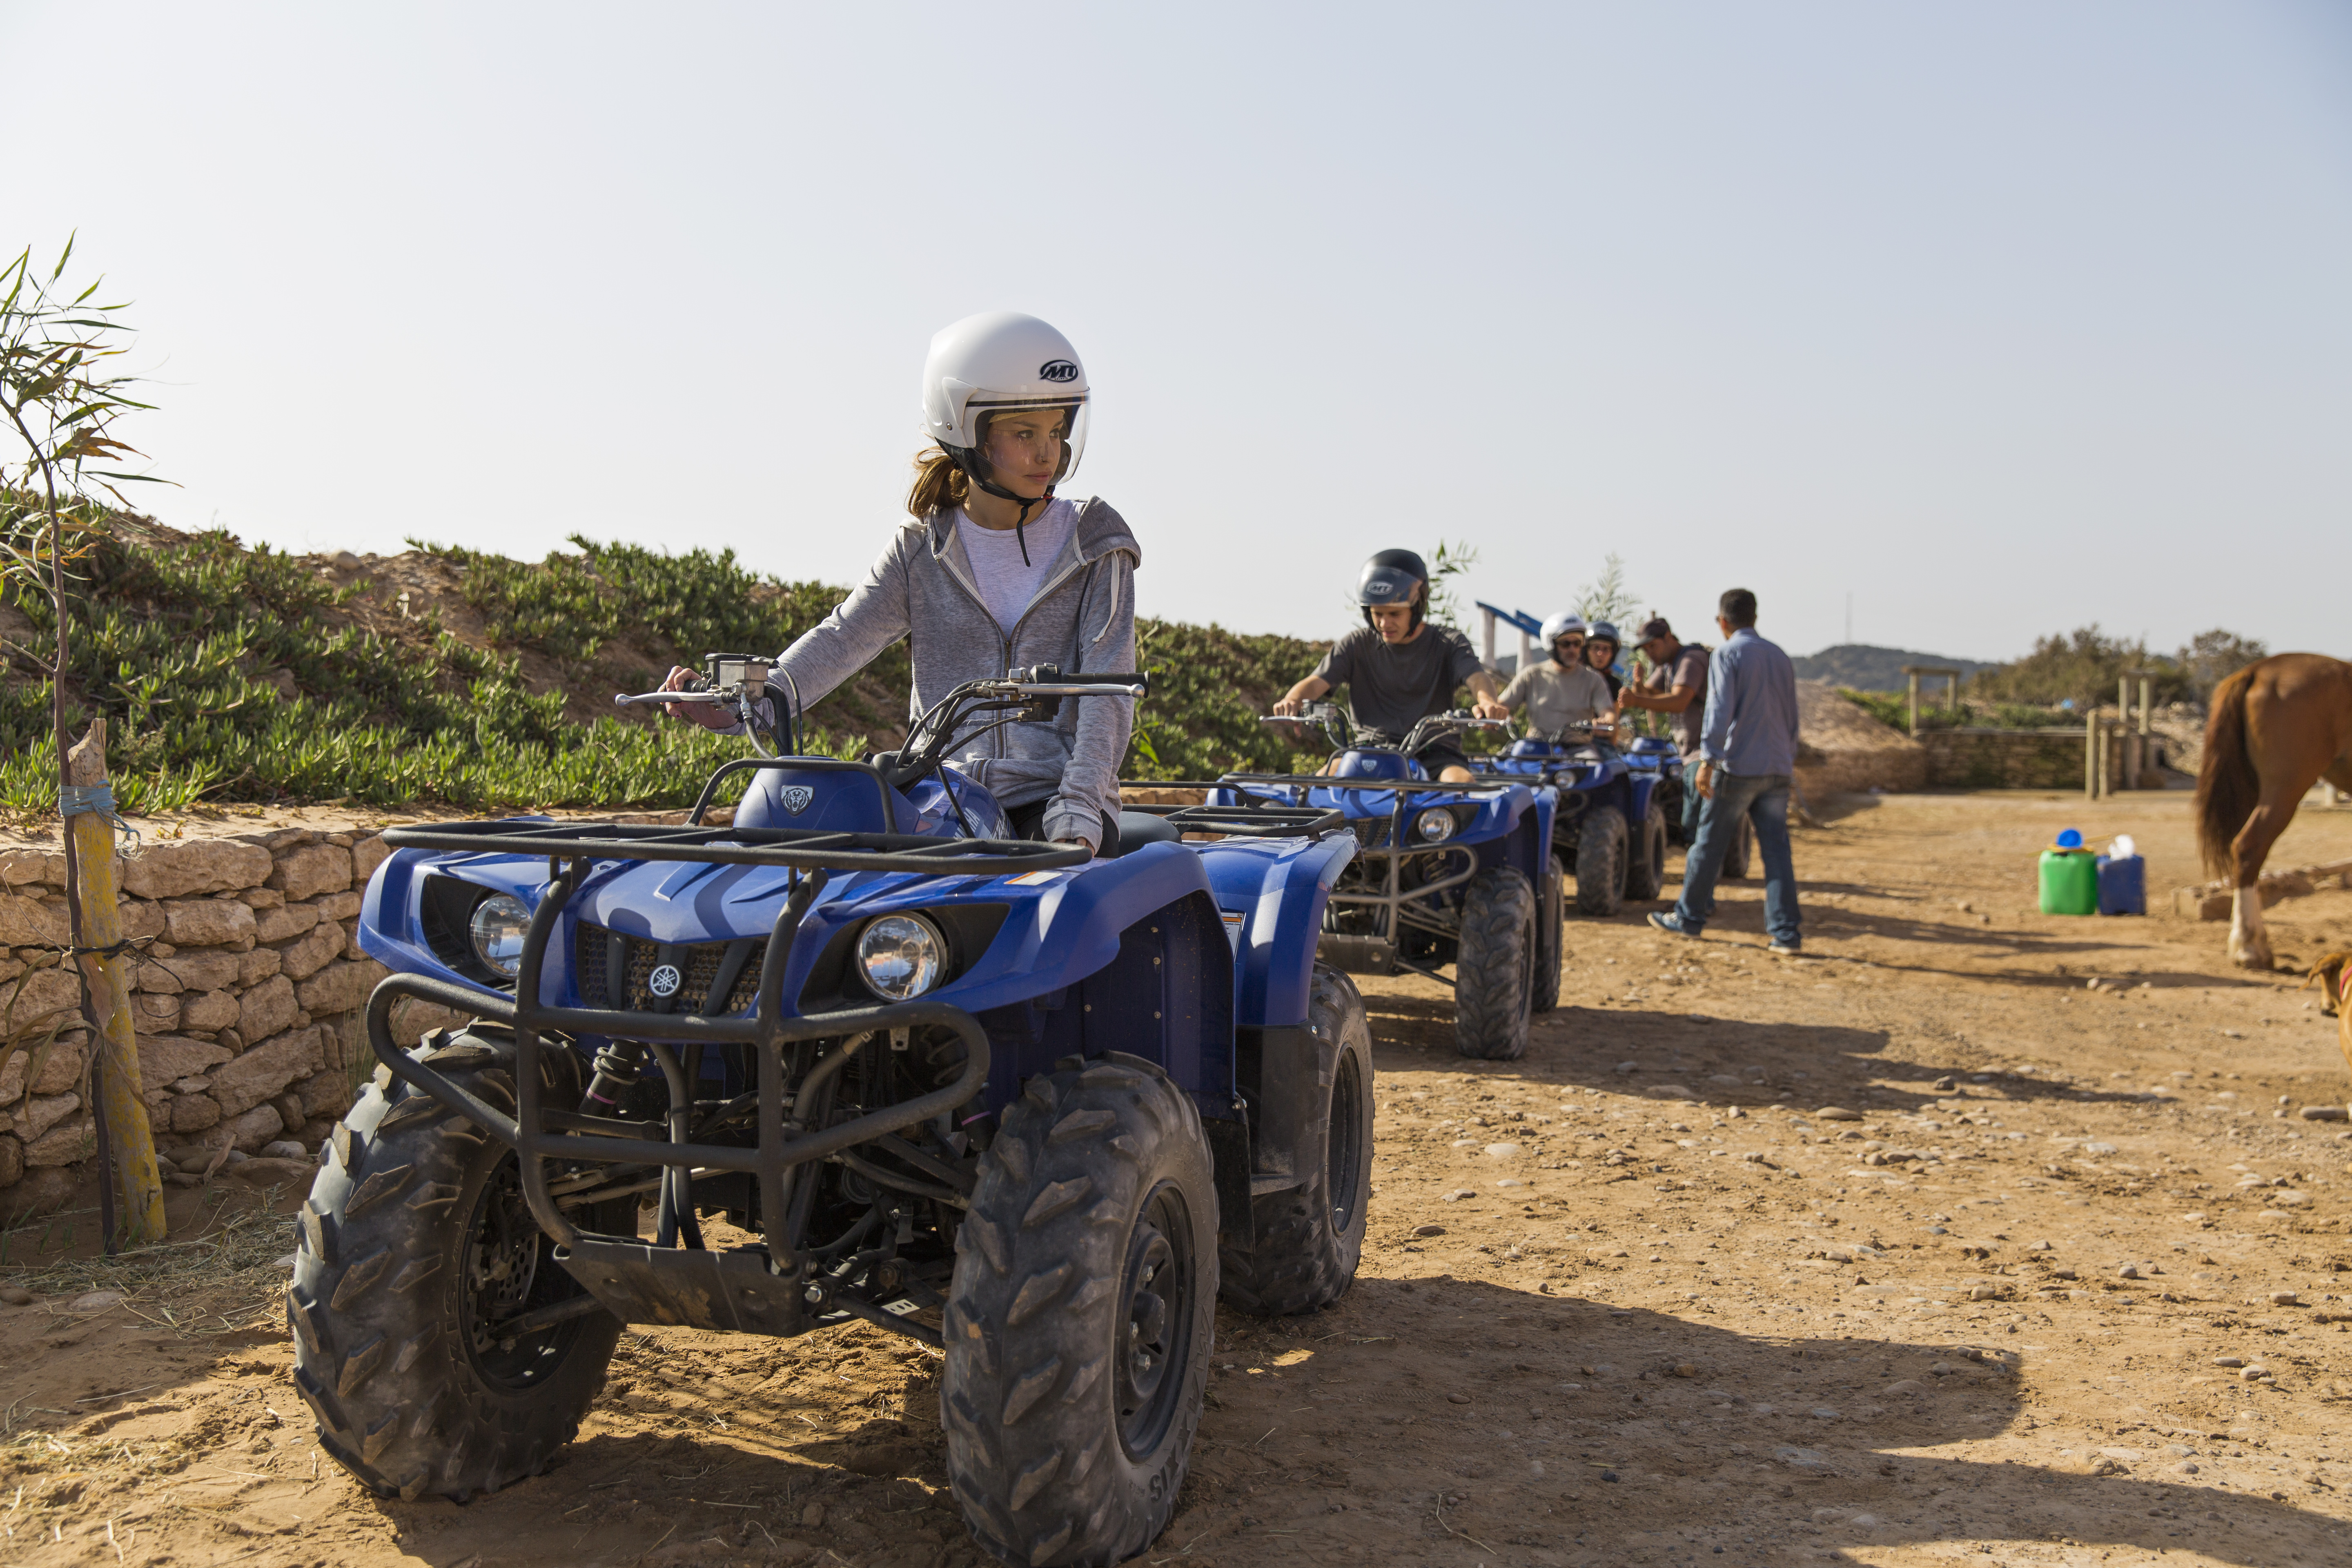 Quad / Atv weekend and night in a Berber camp + party